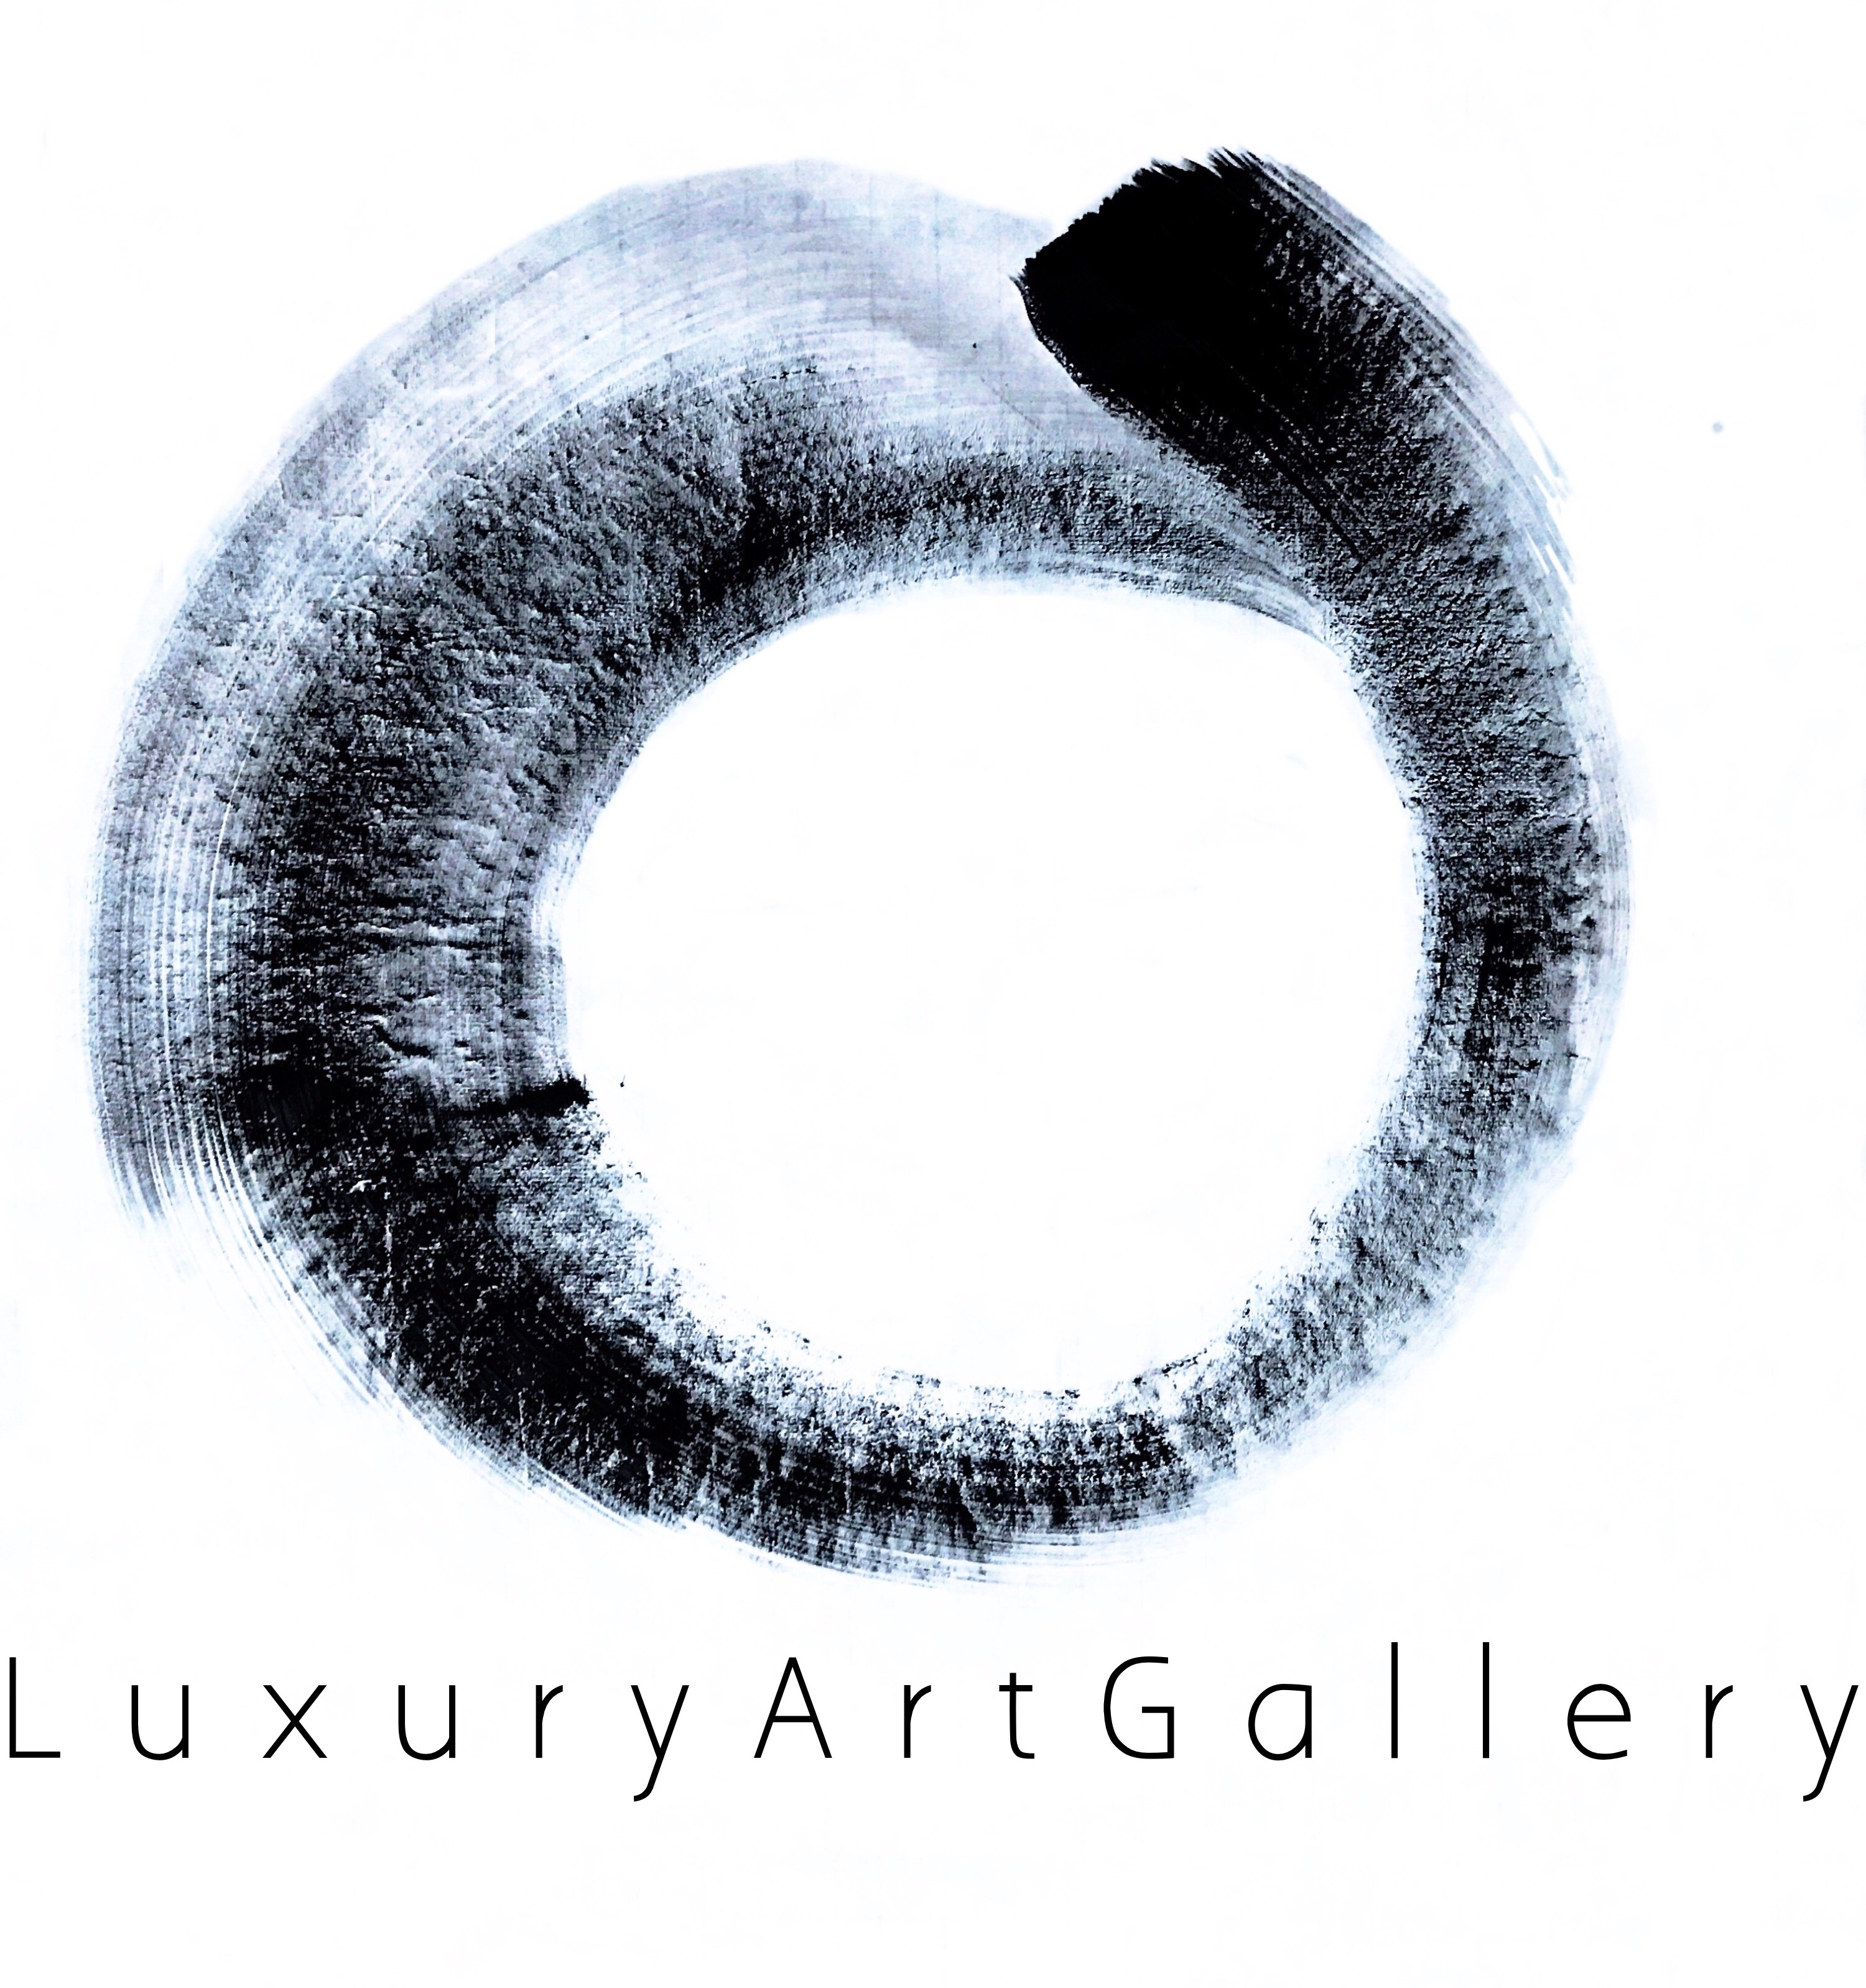 LuxuryArtGallery